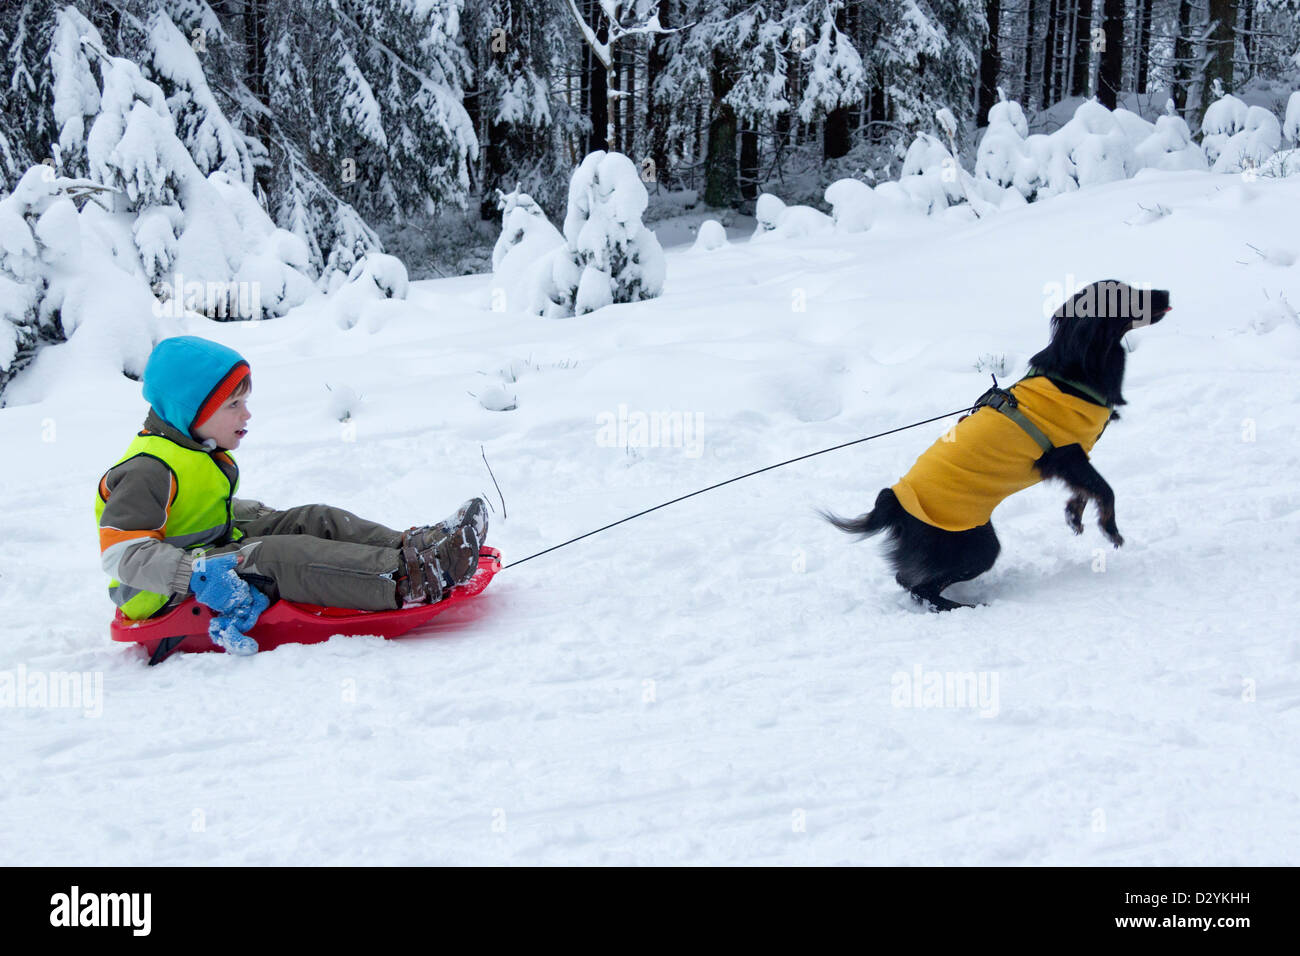 young boy on a sledge being pulled by his dog - Stock Image